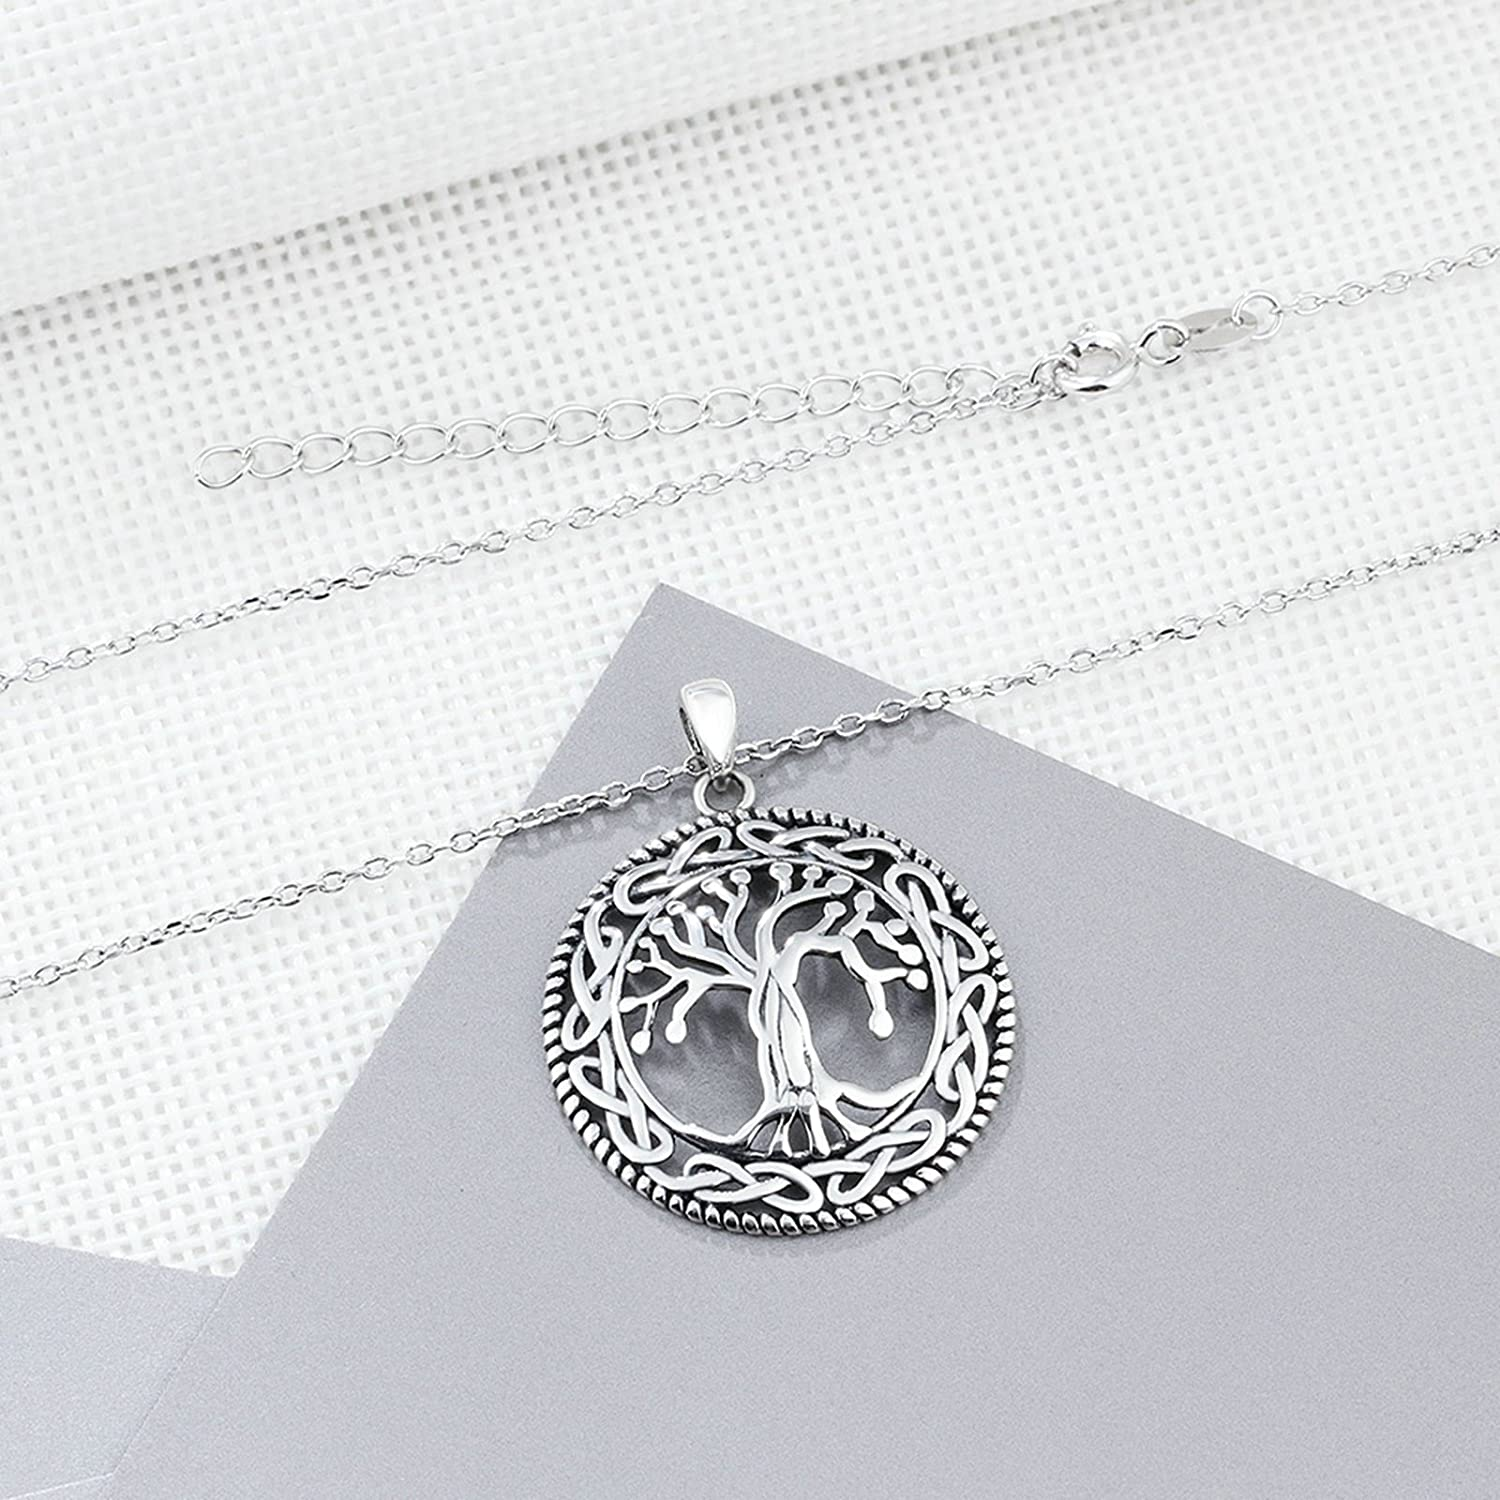 ANAZOZ Women Jewelry S925 Silver Necklace The Tree of Life Surrounded by a Circle Infinity Knot Pendant for Women Ladies